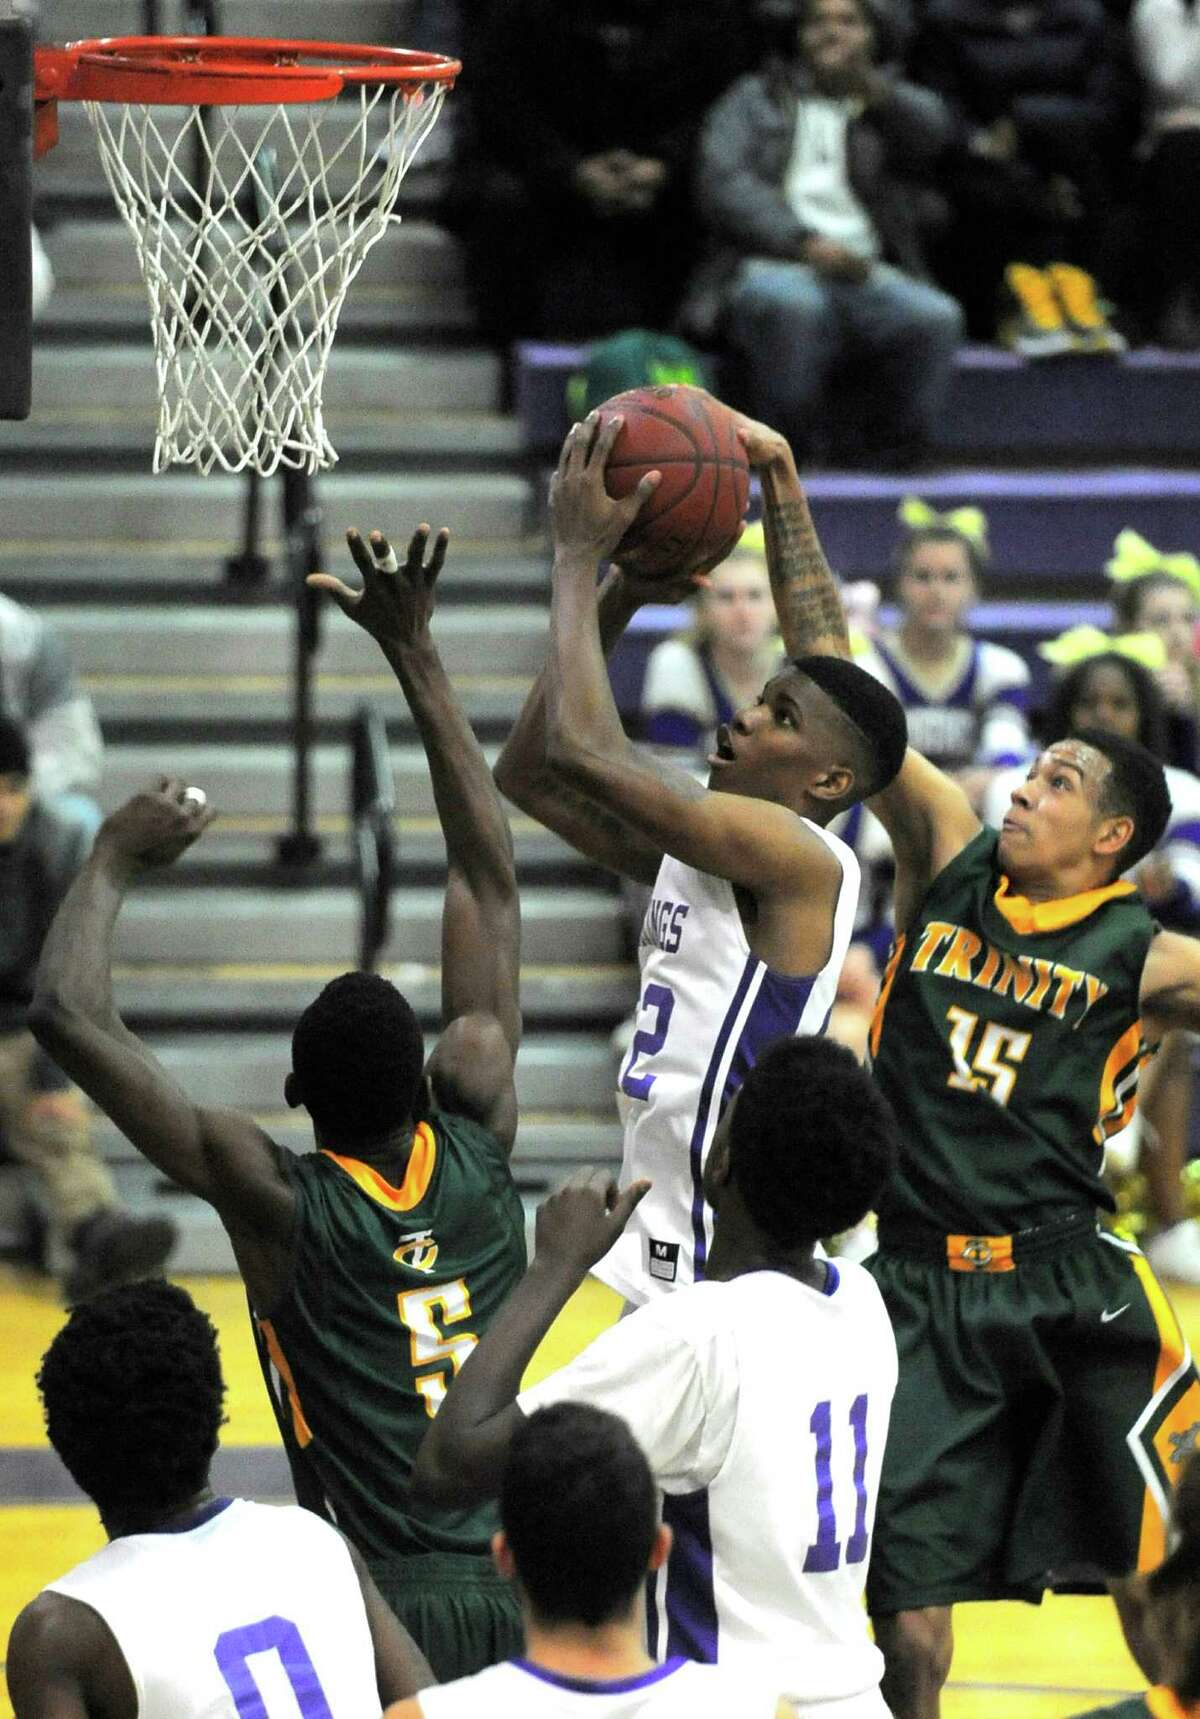 Westhill's Vashon Nattel (22) puts up a shot between Trinity's Dutreil Contavio (5) and Bryce Lucas (15) in the second quarter of a FCIAC basketball game in Stamford, Conn. on Tuesday, Jan. 19, 2016.Westhill defeated Trinity Catholic 52-45.